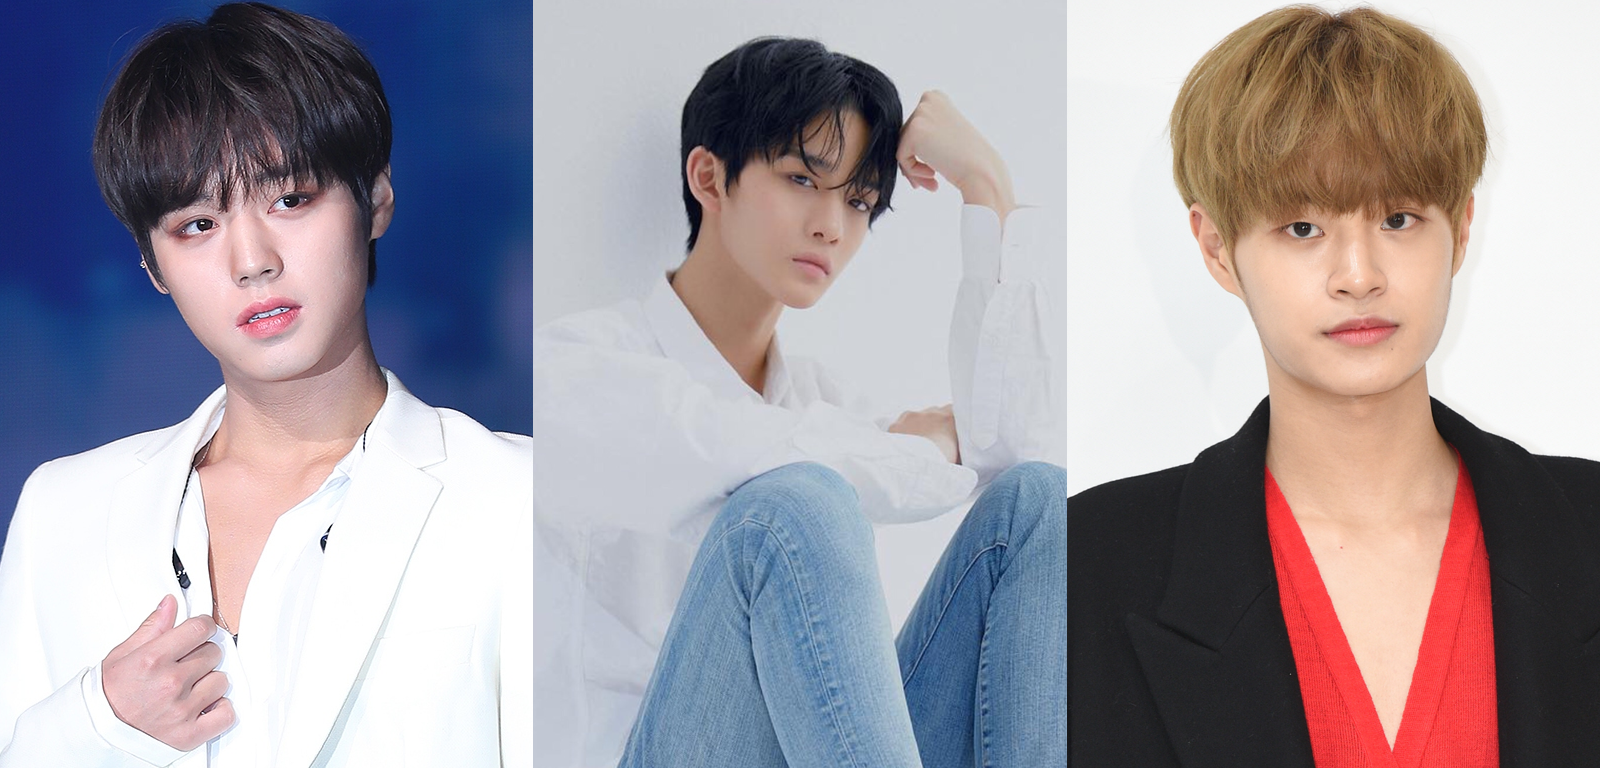 Wanna One: Park Jihoon and Lee Dae Hwi visited Bae Jin Young during his fanmeeting